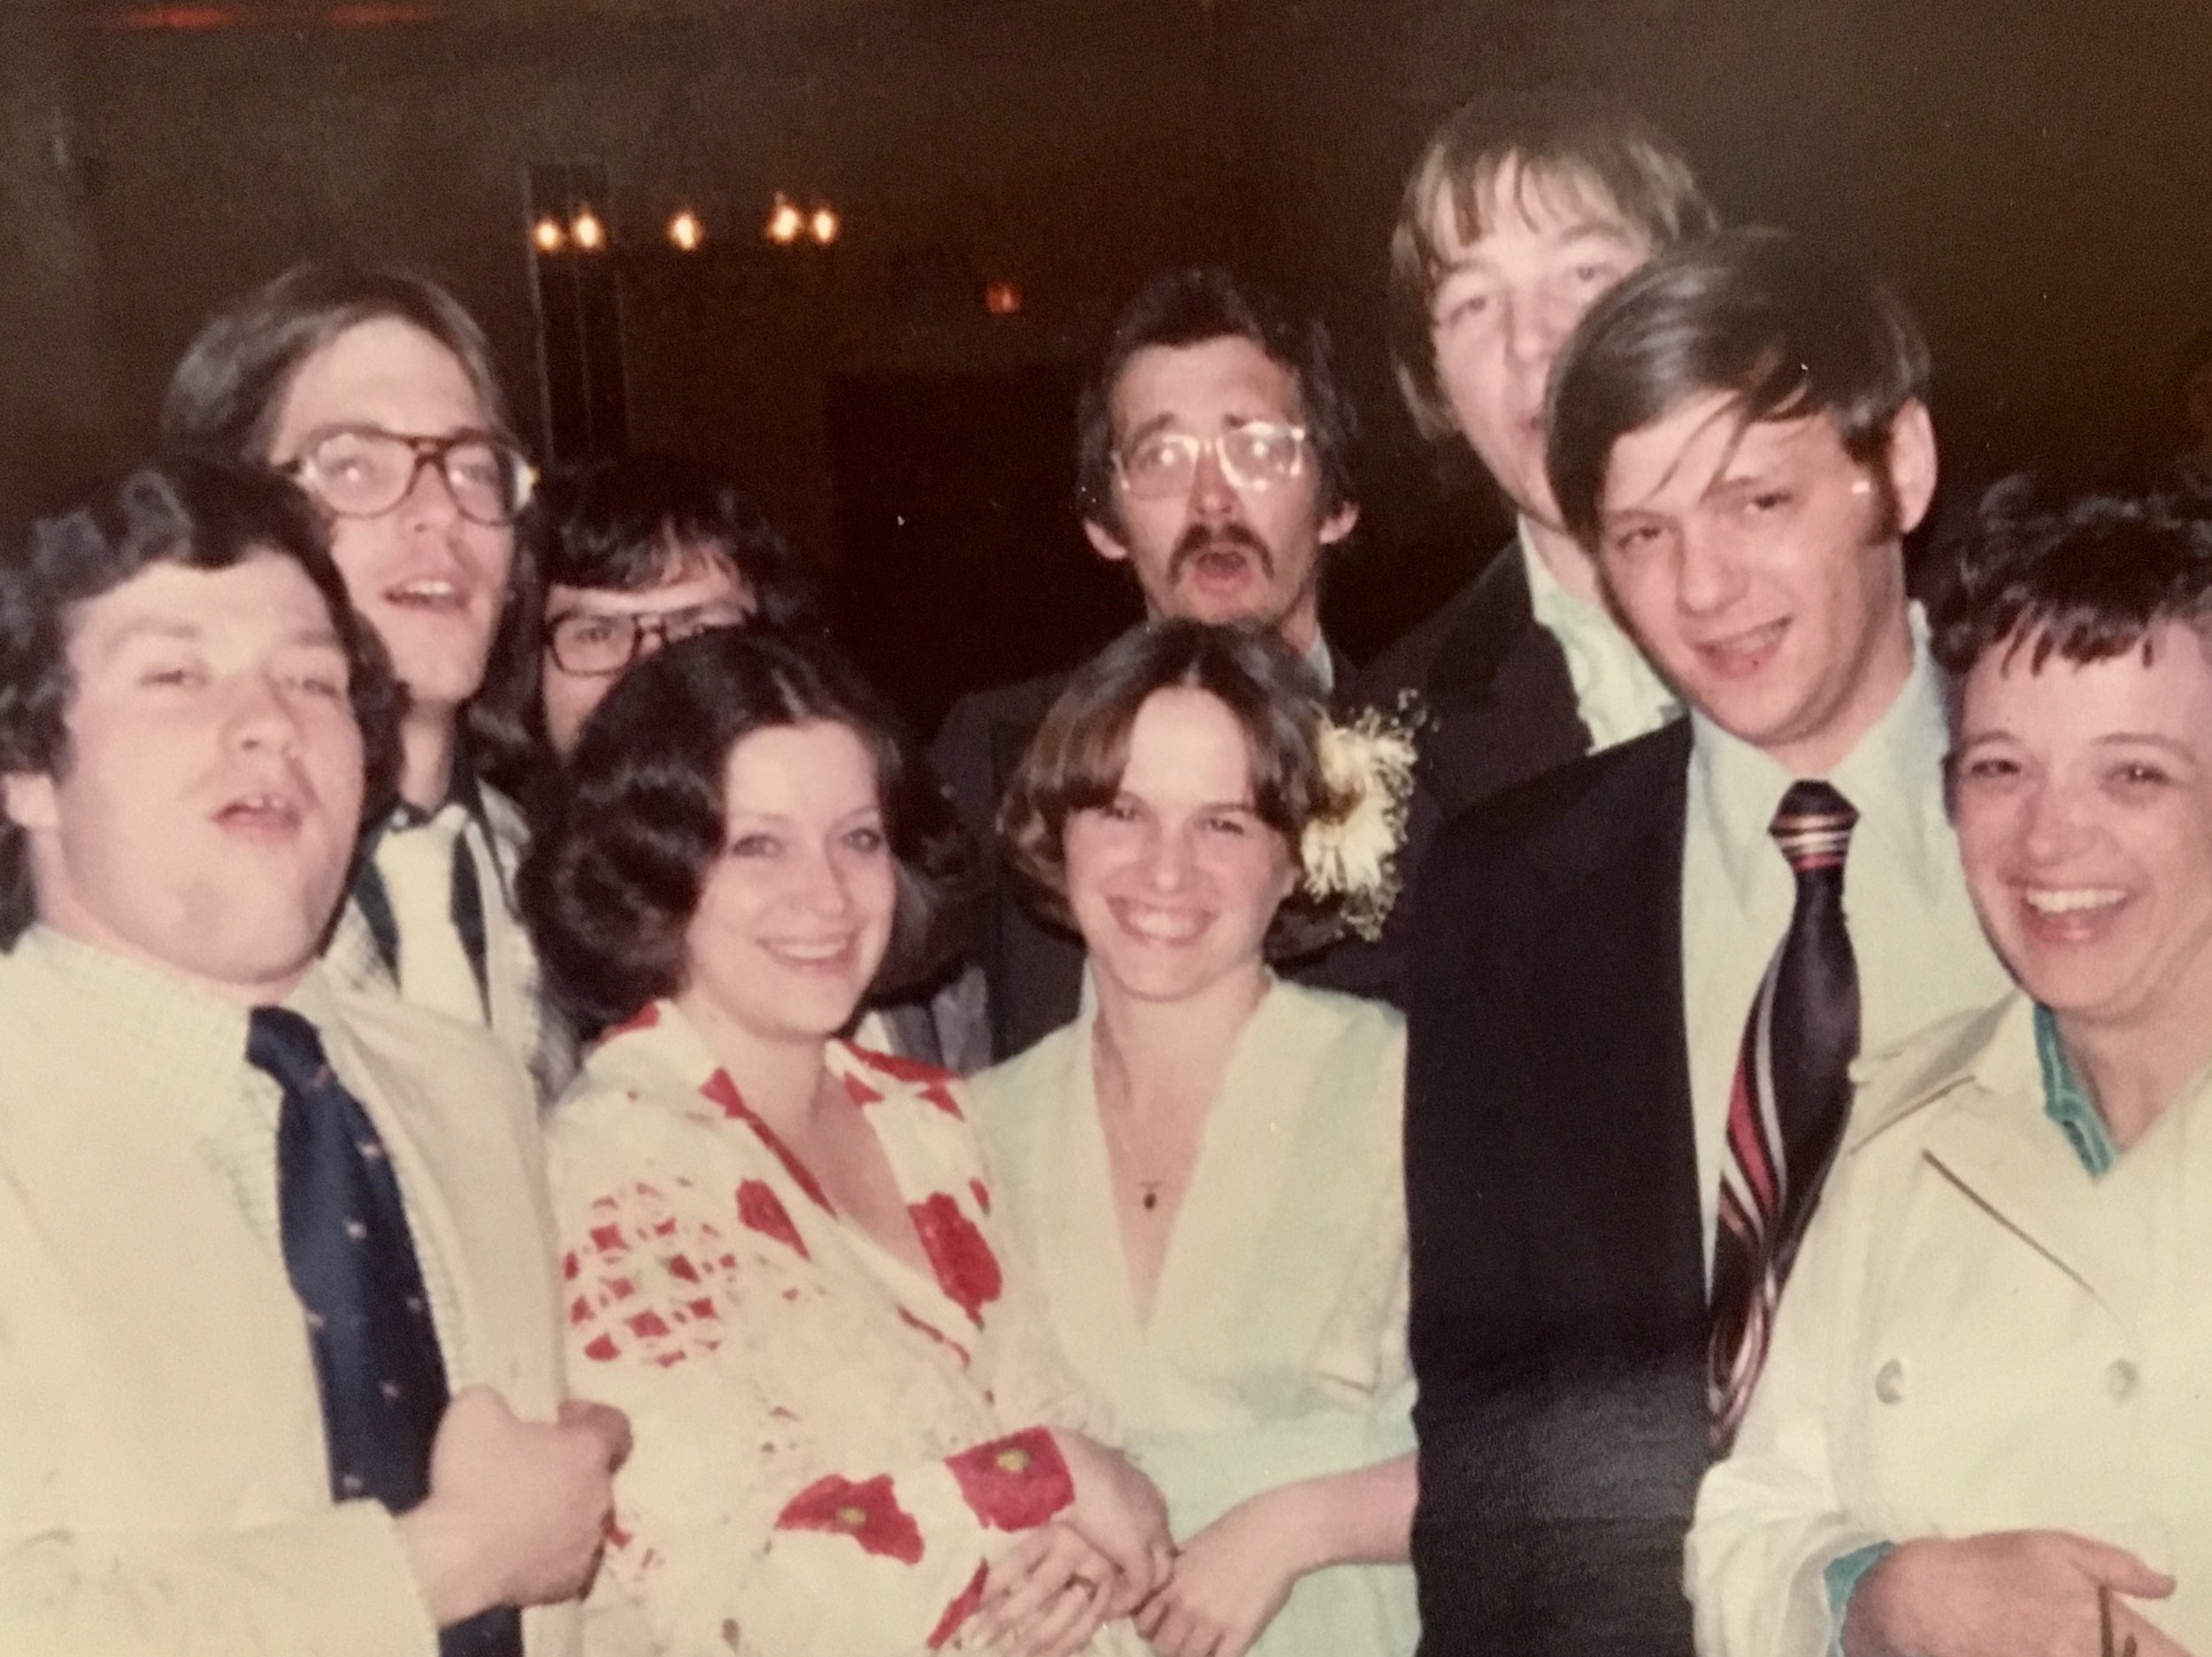 State Street Gang members (active participants in the NYS Republican Party) in 1976.